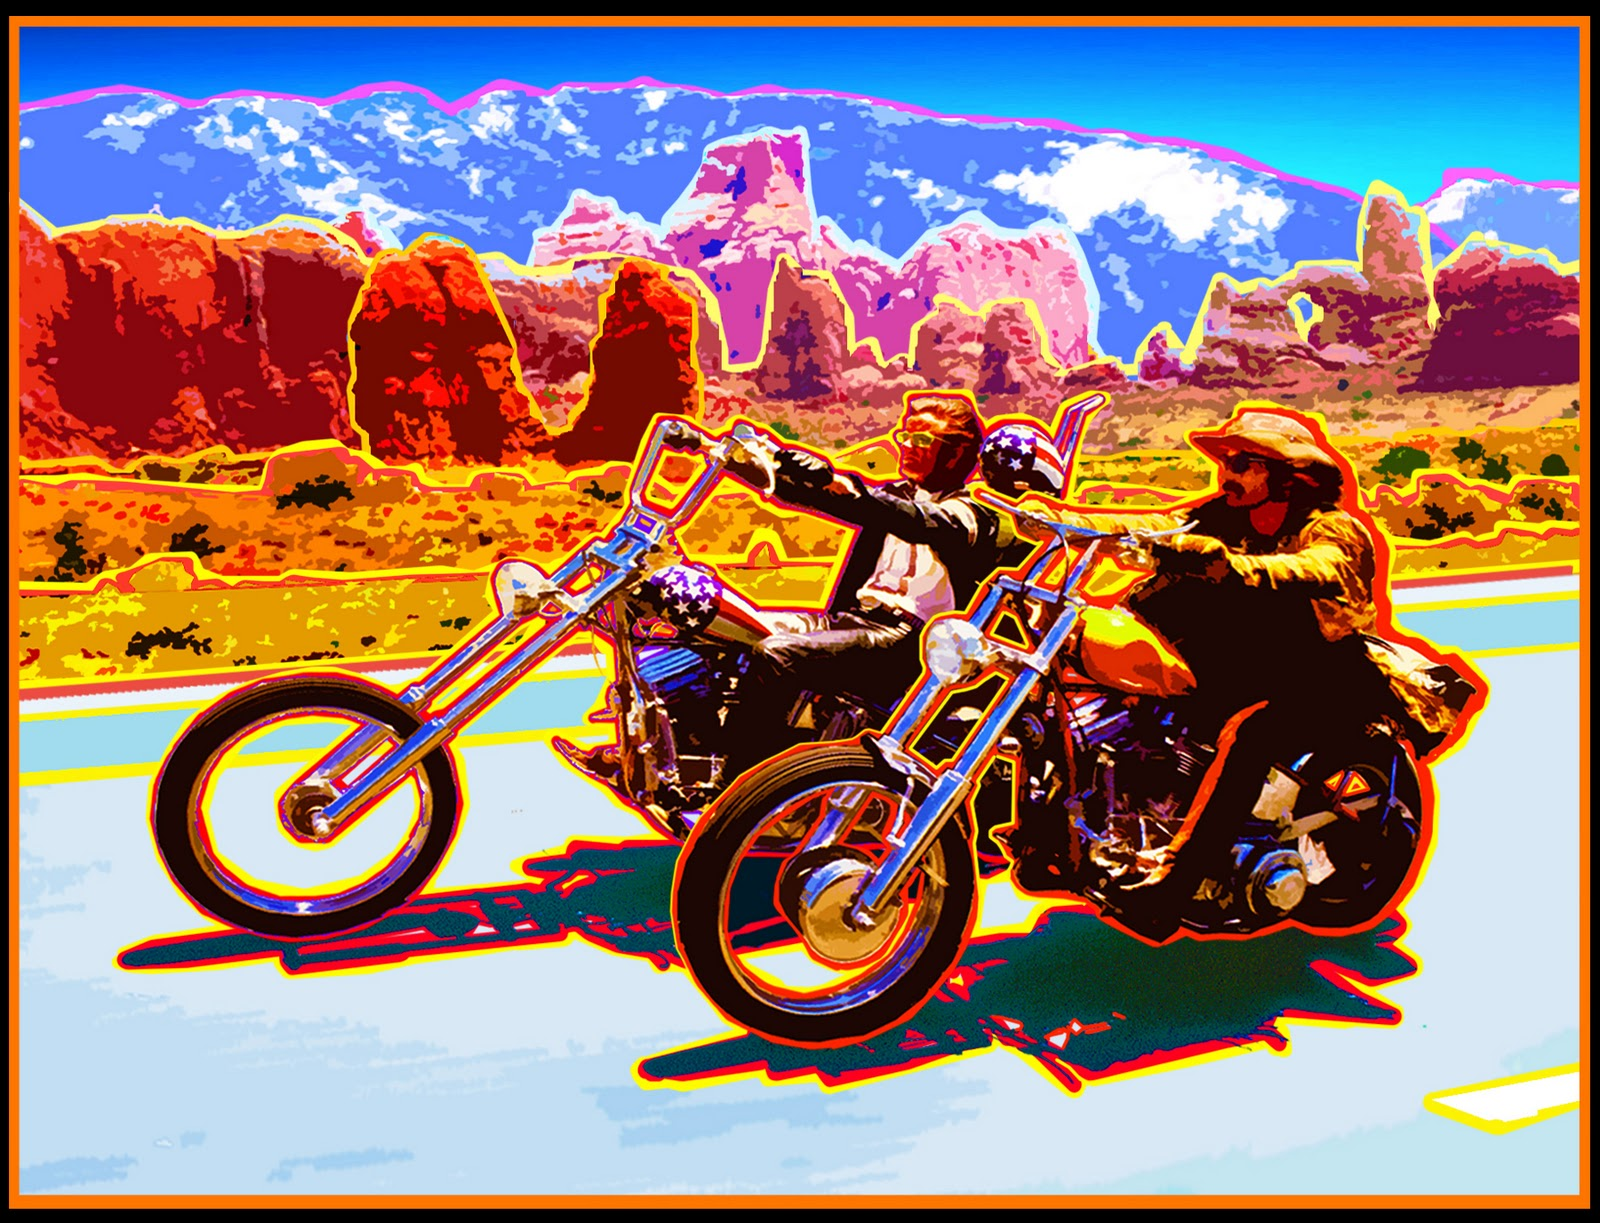 Easy Rider Wallpaper 1600x1223 36625 Wallpaperup HD Wallpapers Download Free Images Wallpaper [1000image.com]